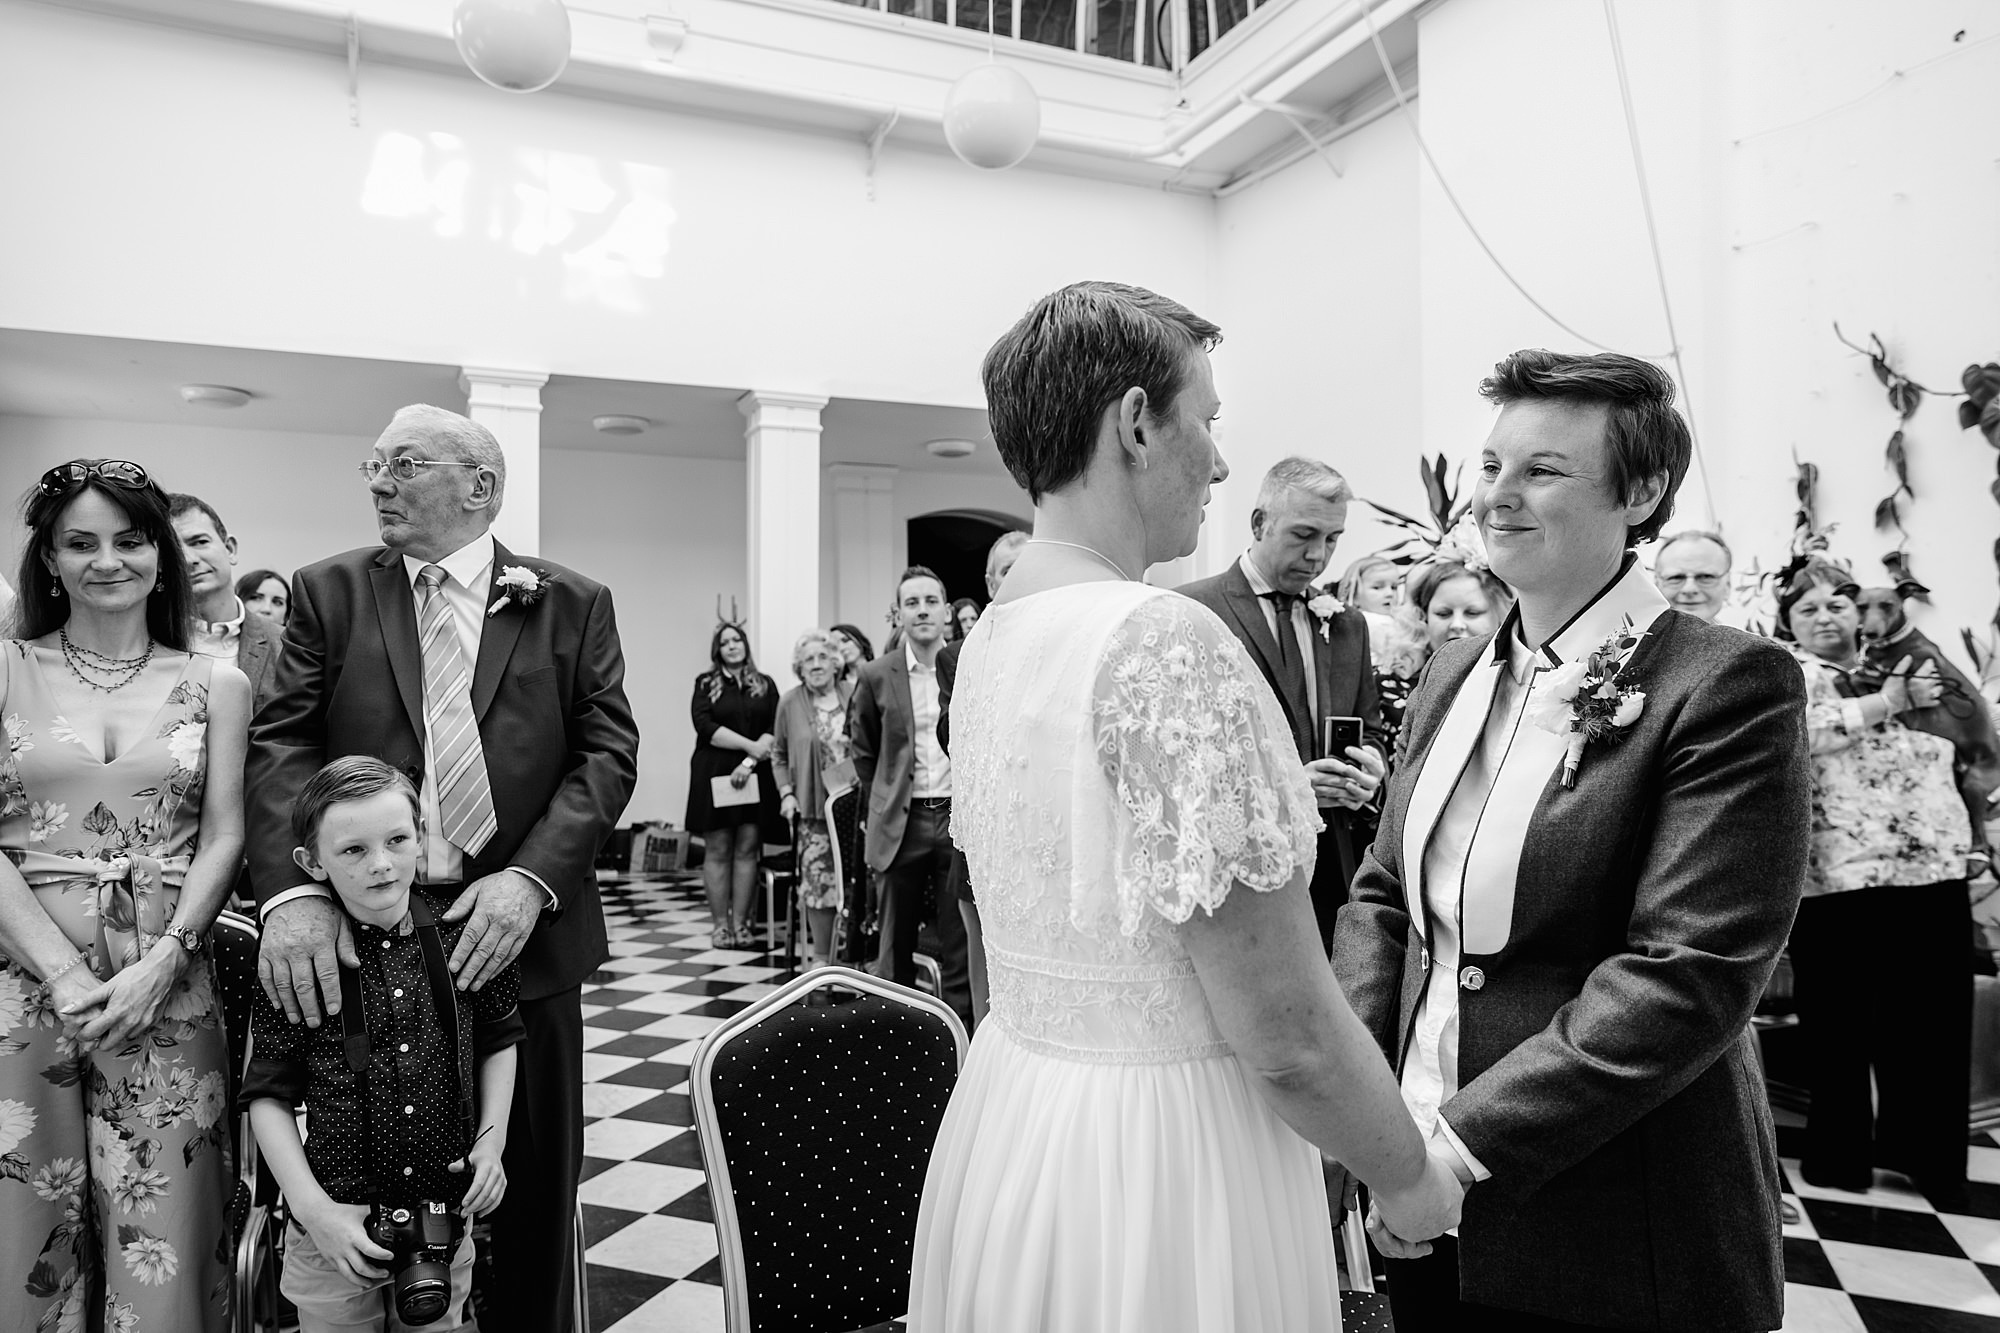 Twickenham wedding photography brides exchange vows at york house